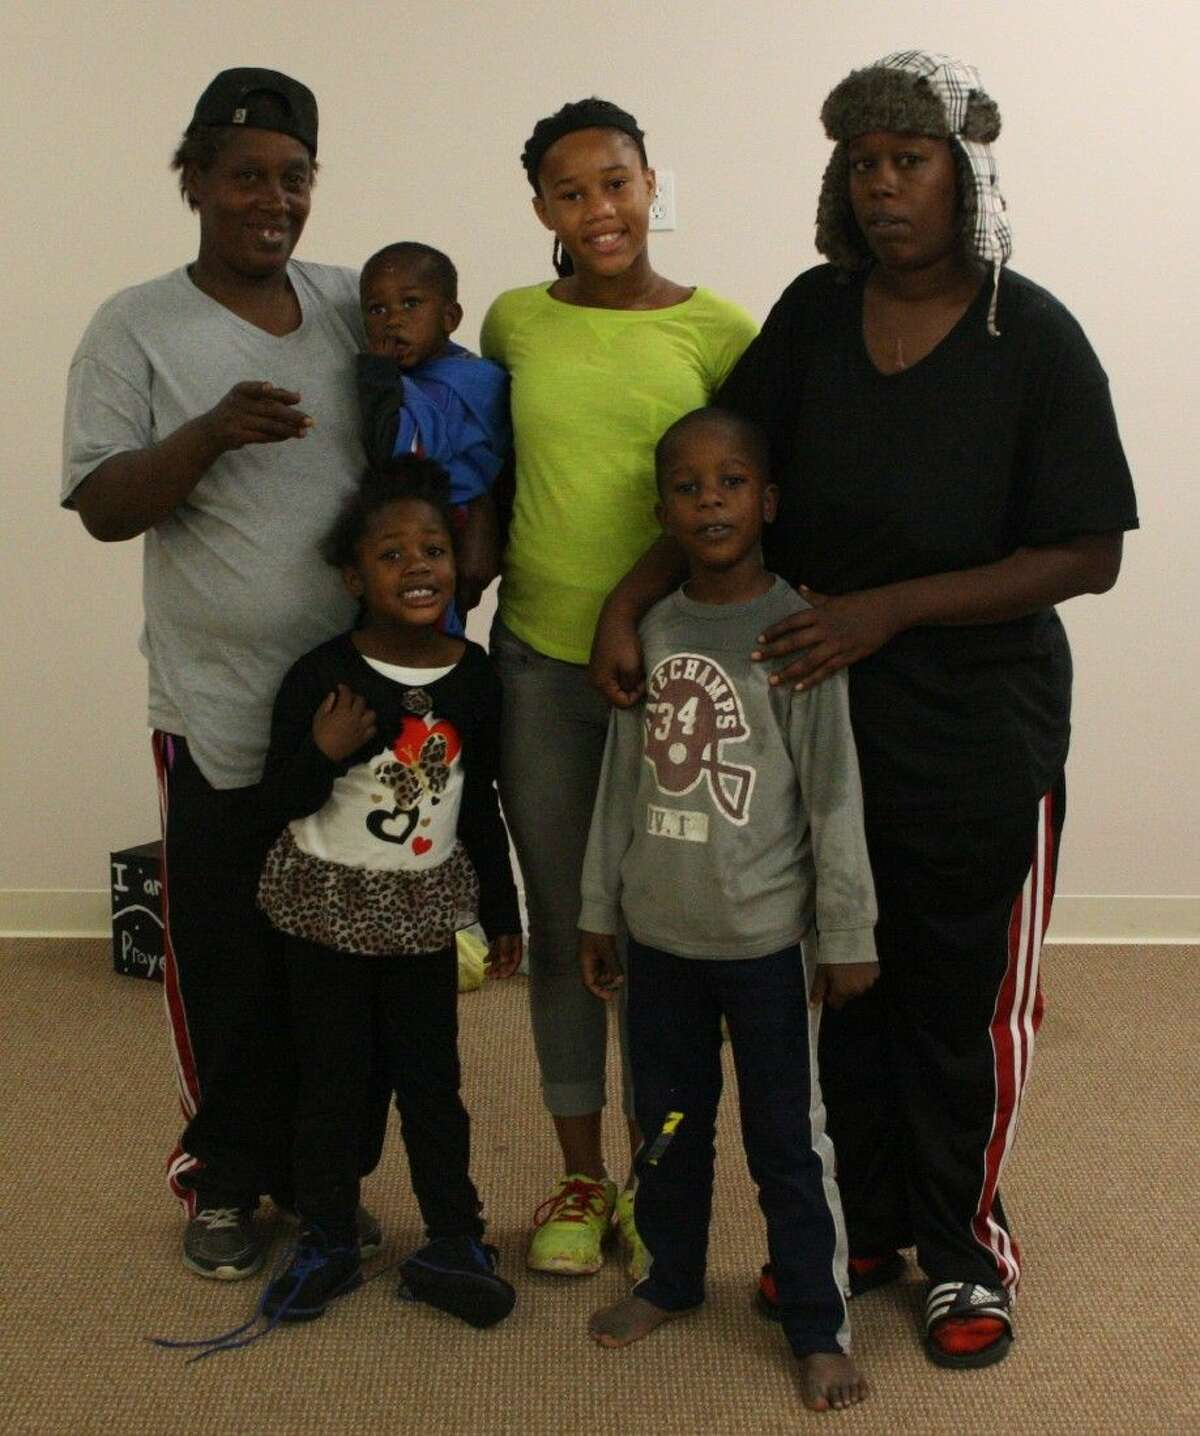 The Glaze family lost their home in Oakhurst on Dec. 17. They are currently in need of support and appreciate everyone who has helped them out so far. Pictured are grandmother Alice Glaze, Ja'Various Glaze, Ja'Kayda Glaze, mother Yolanda Glaze, Kelcy Glaze and Jaden Glaze.